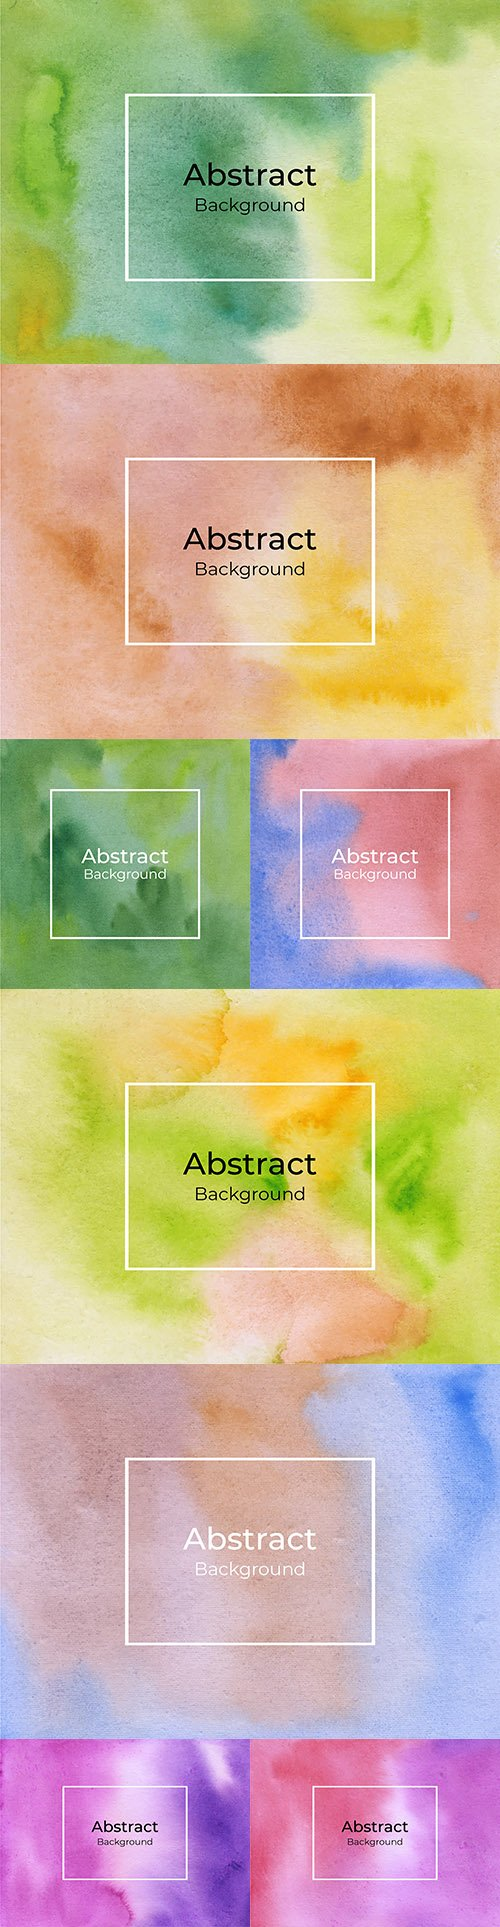 Abstract multicolored watercolor background